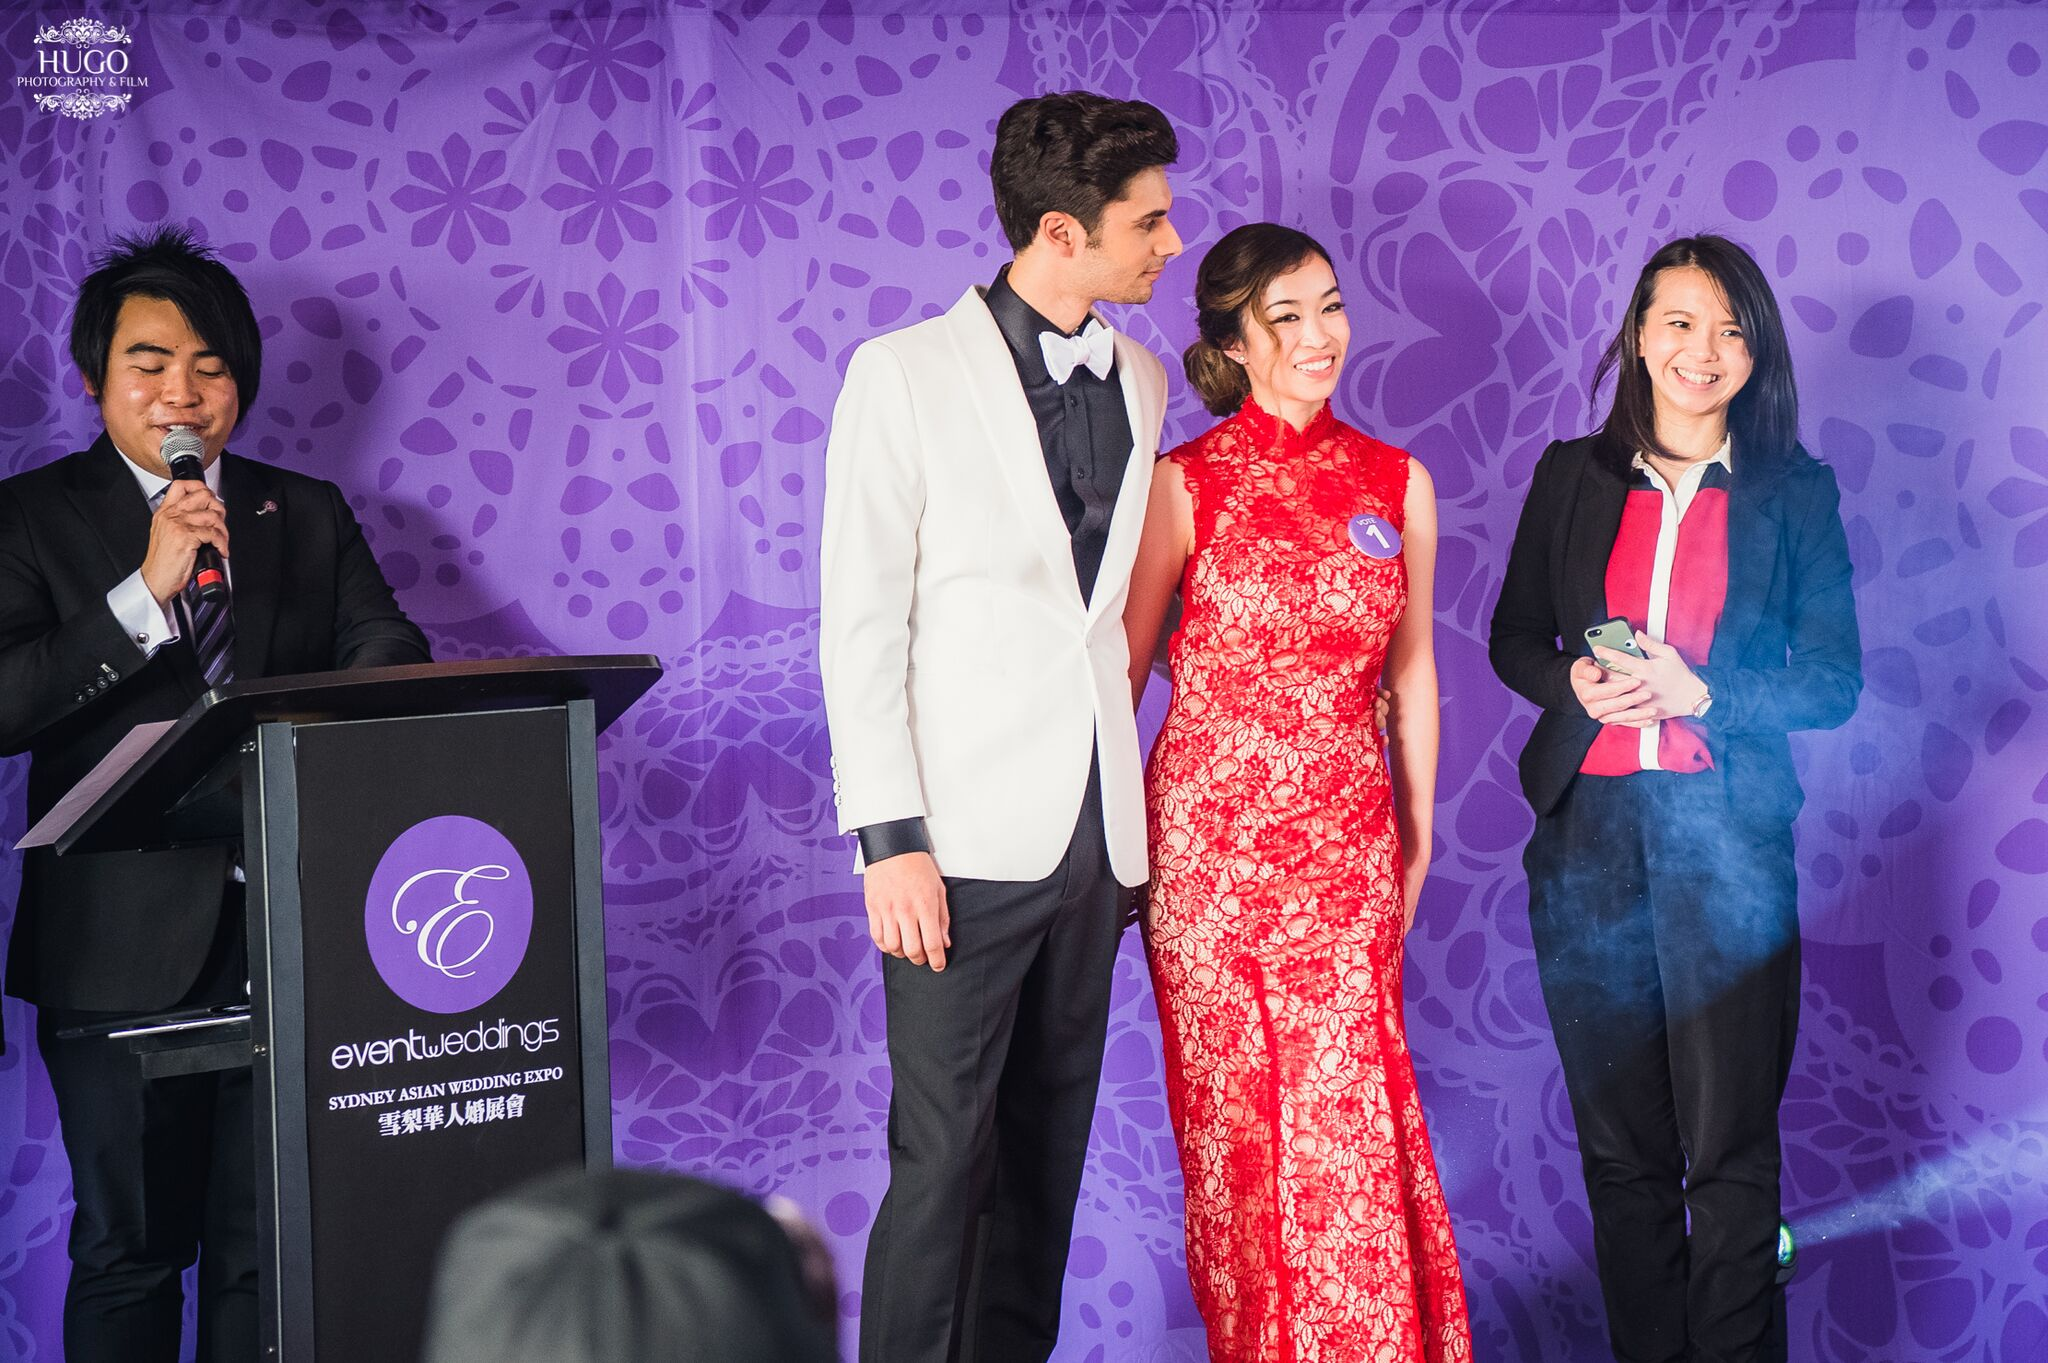 Australia Asian Bridal Makeup Hairstyling Award 2016 Event Weddings